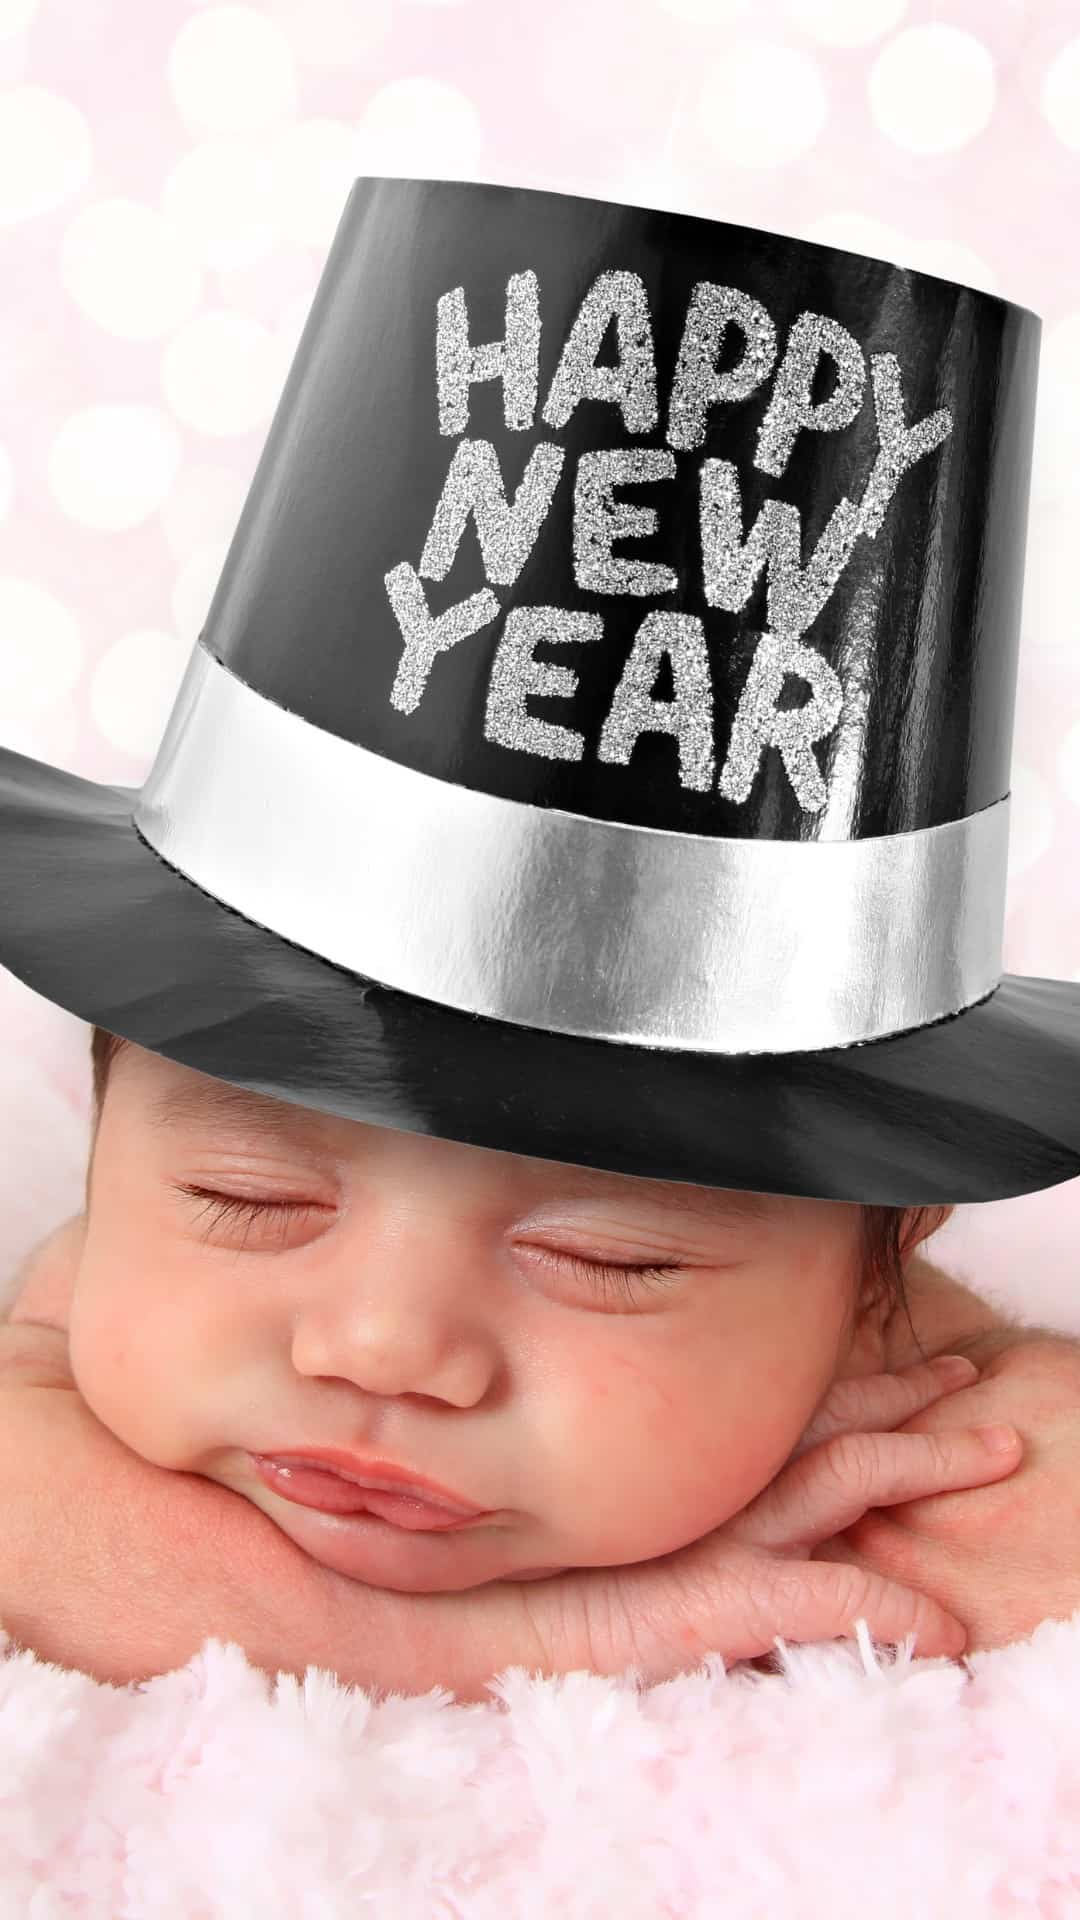 Happy New Years Aesthetic iPhone Wallpaper Backgrounds 8